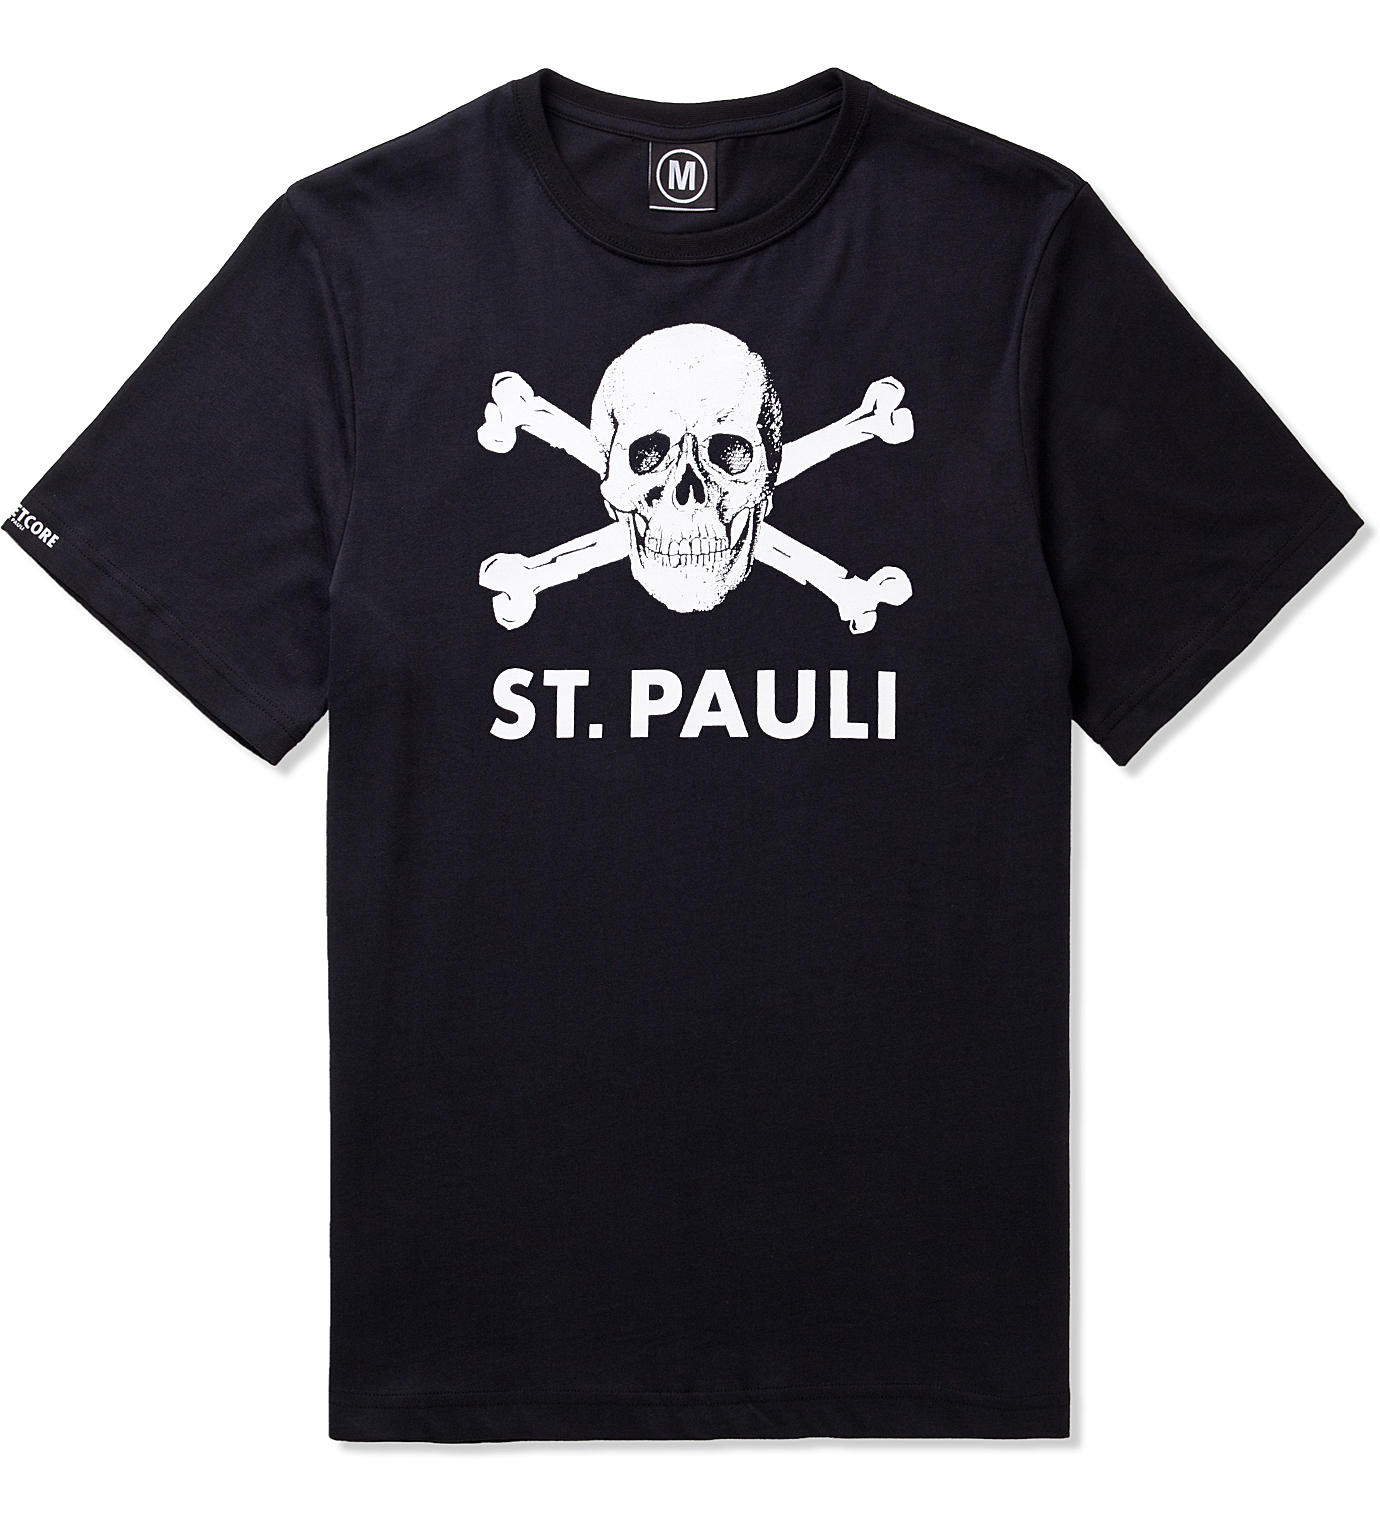 st pauli black large skull logo t shirt hypebeast store. Black Bedroom Furniture Sets. Home Design Ideas